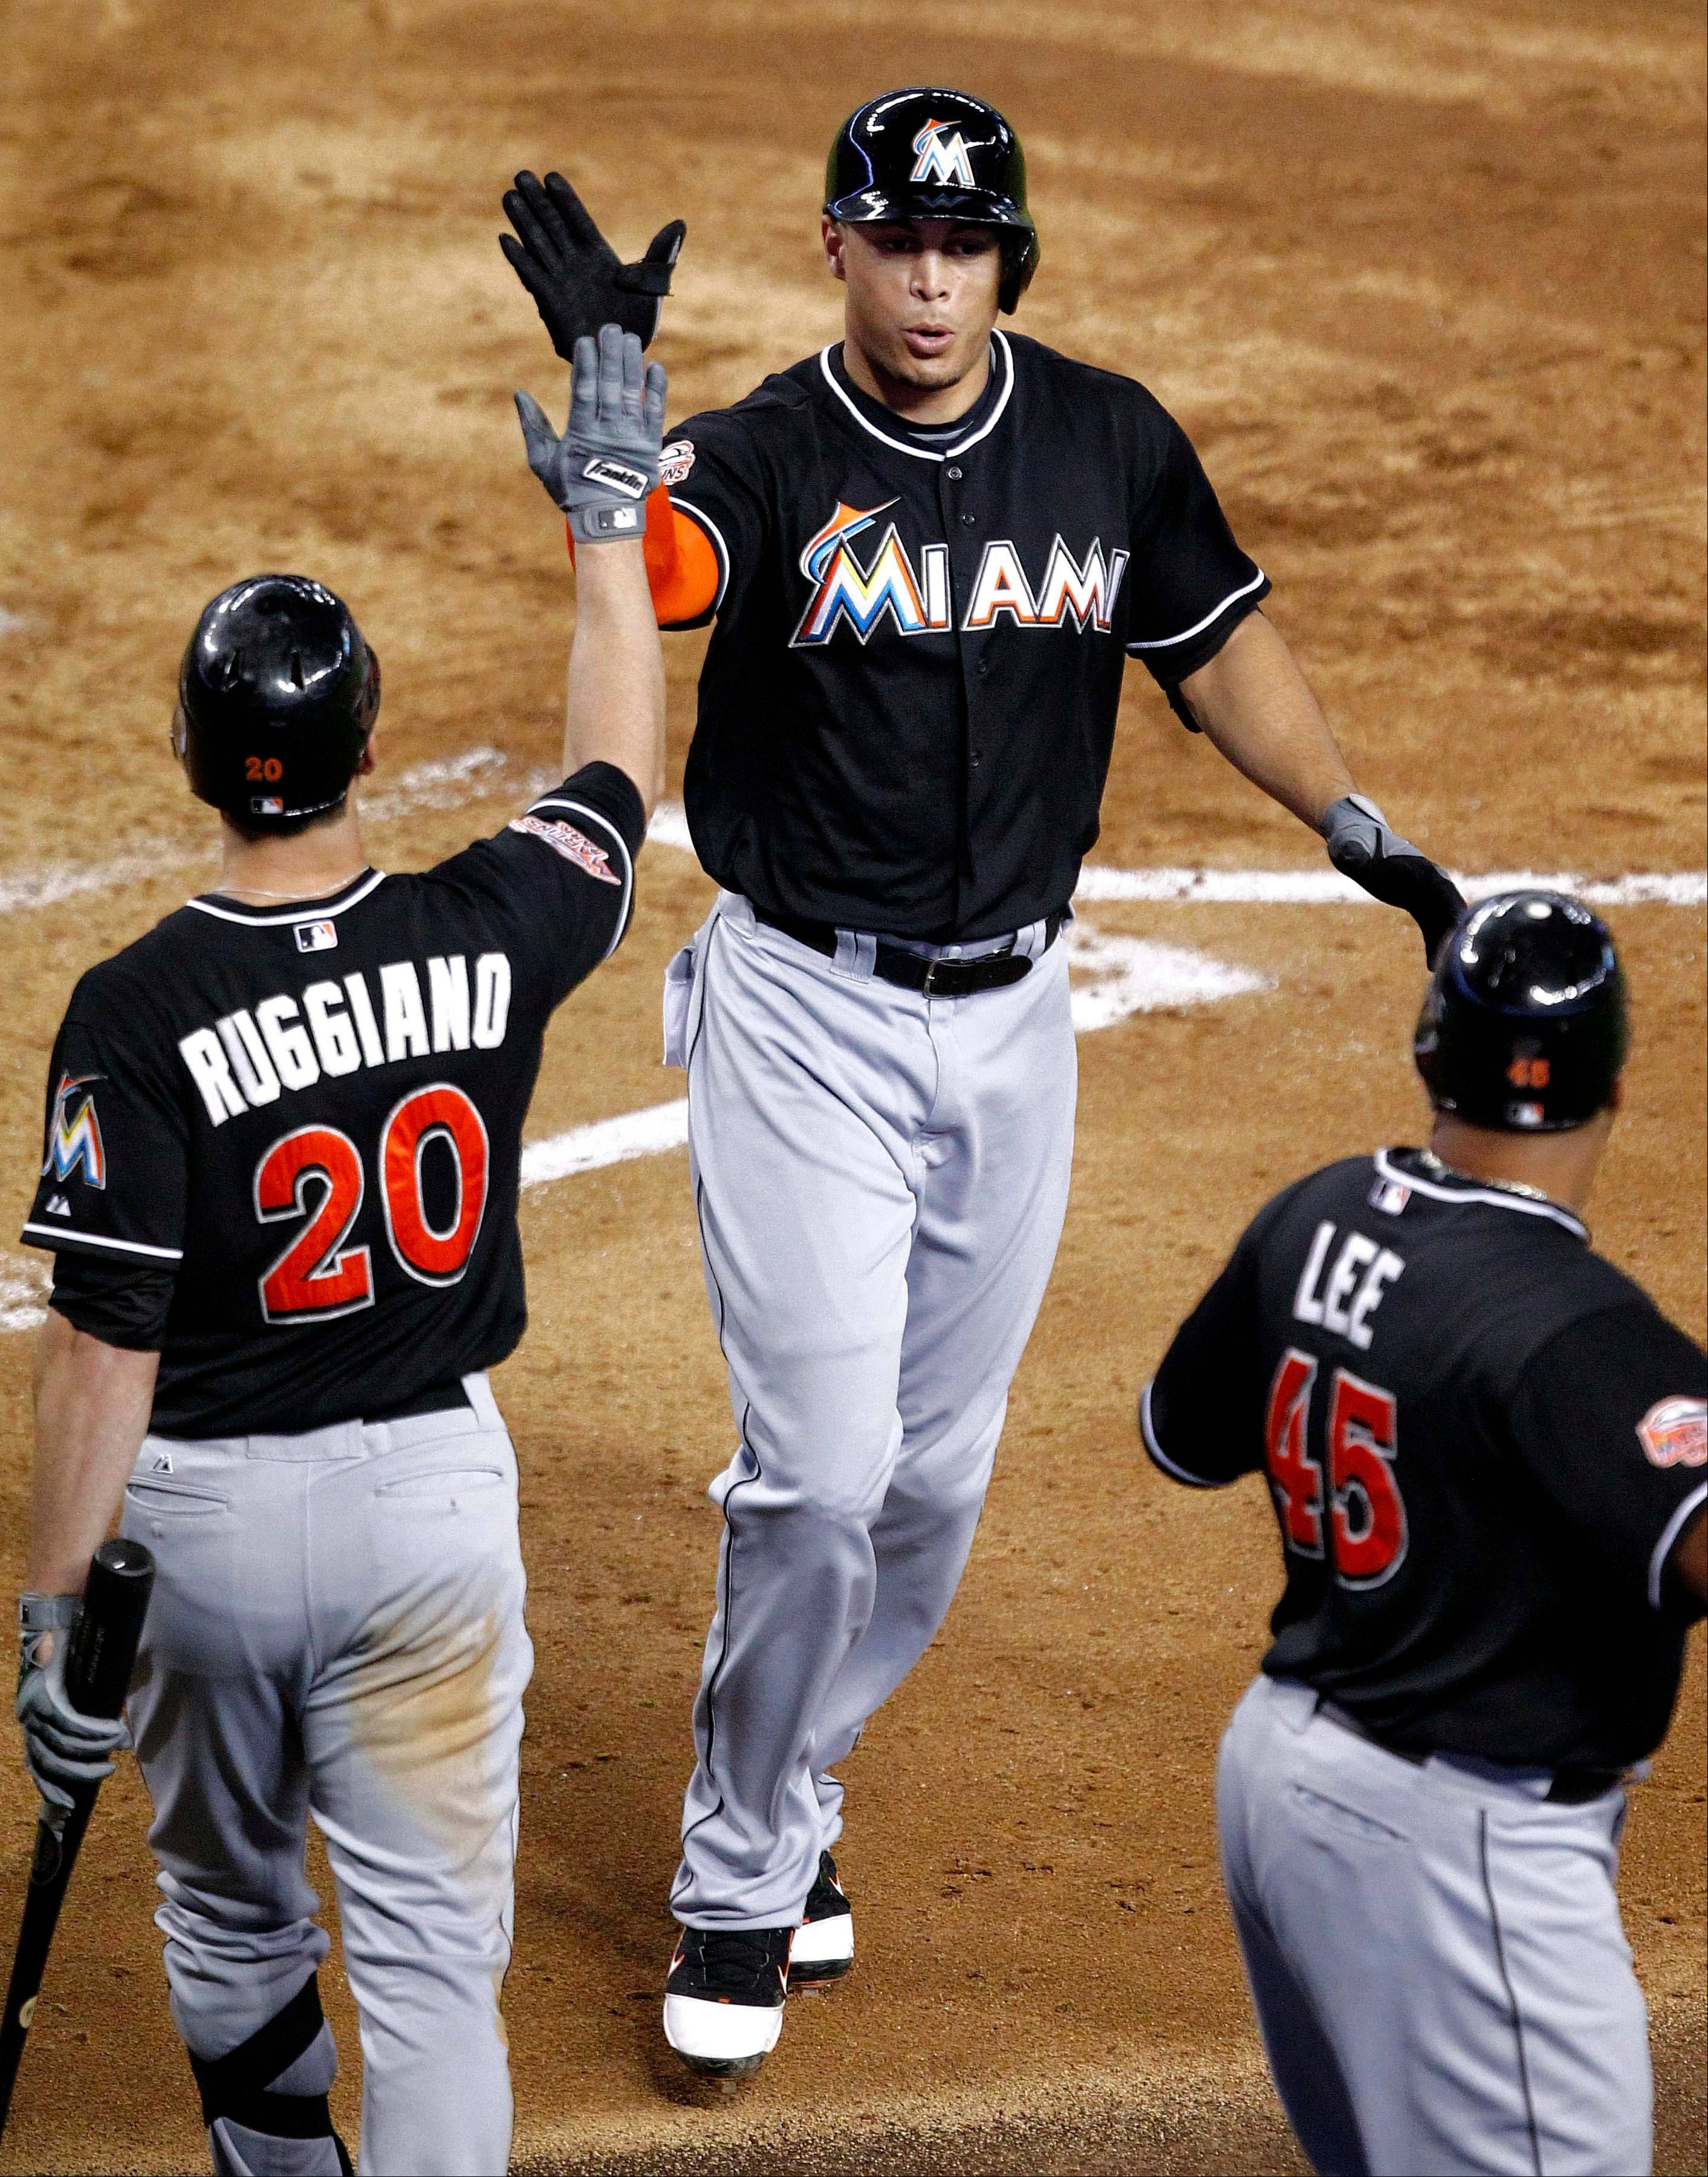 The Marlins' Giancarlo Stanton is greeted at home plate by teammate Justin Ruggiano and Carlos Lee after hitting a three-run home run against the Arizona Diamondbacks during the fourth inning Monday in Phoenix.